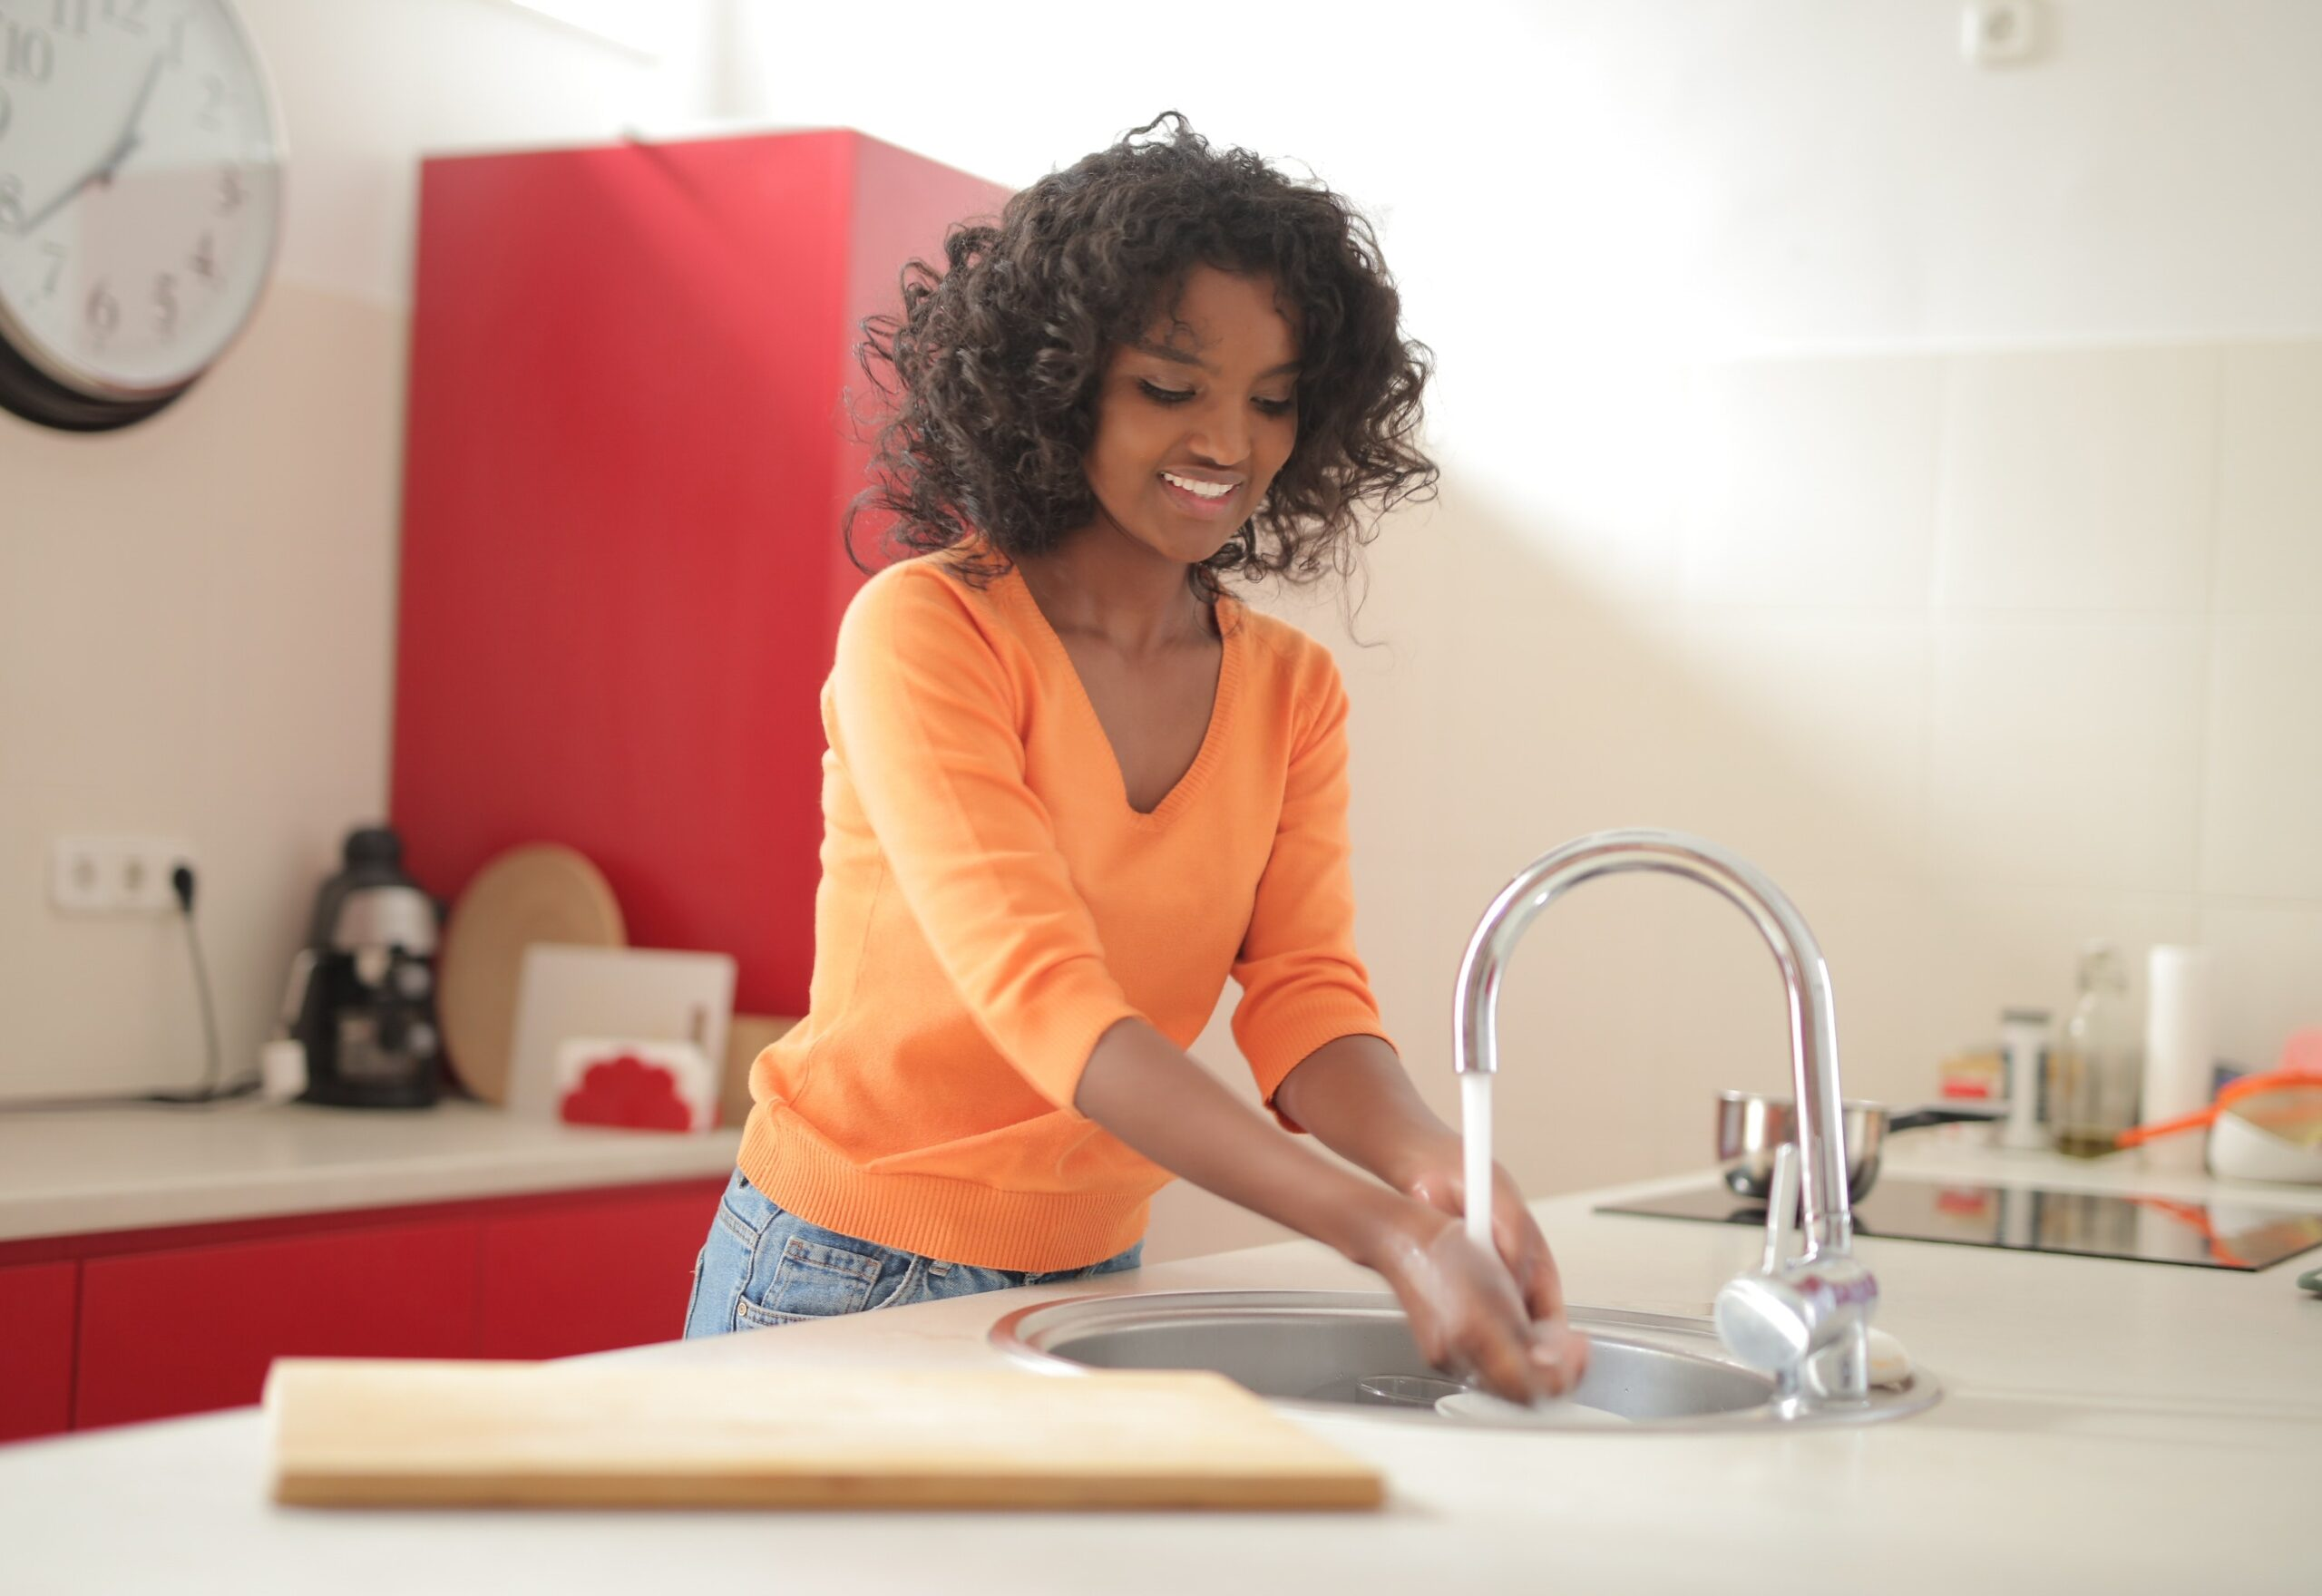 Stainless Steel or Copper Sink: Which One's Better?